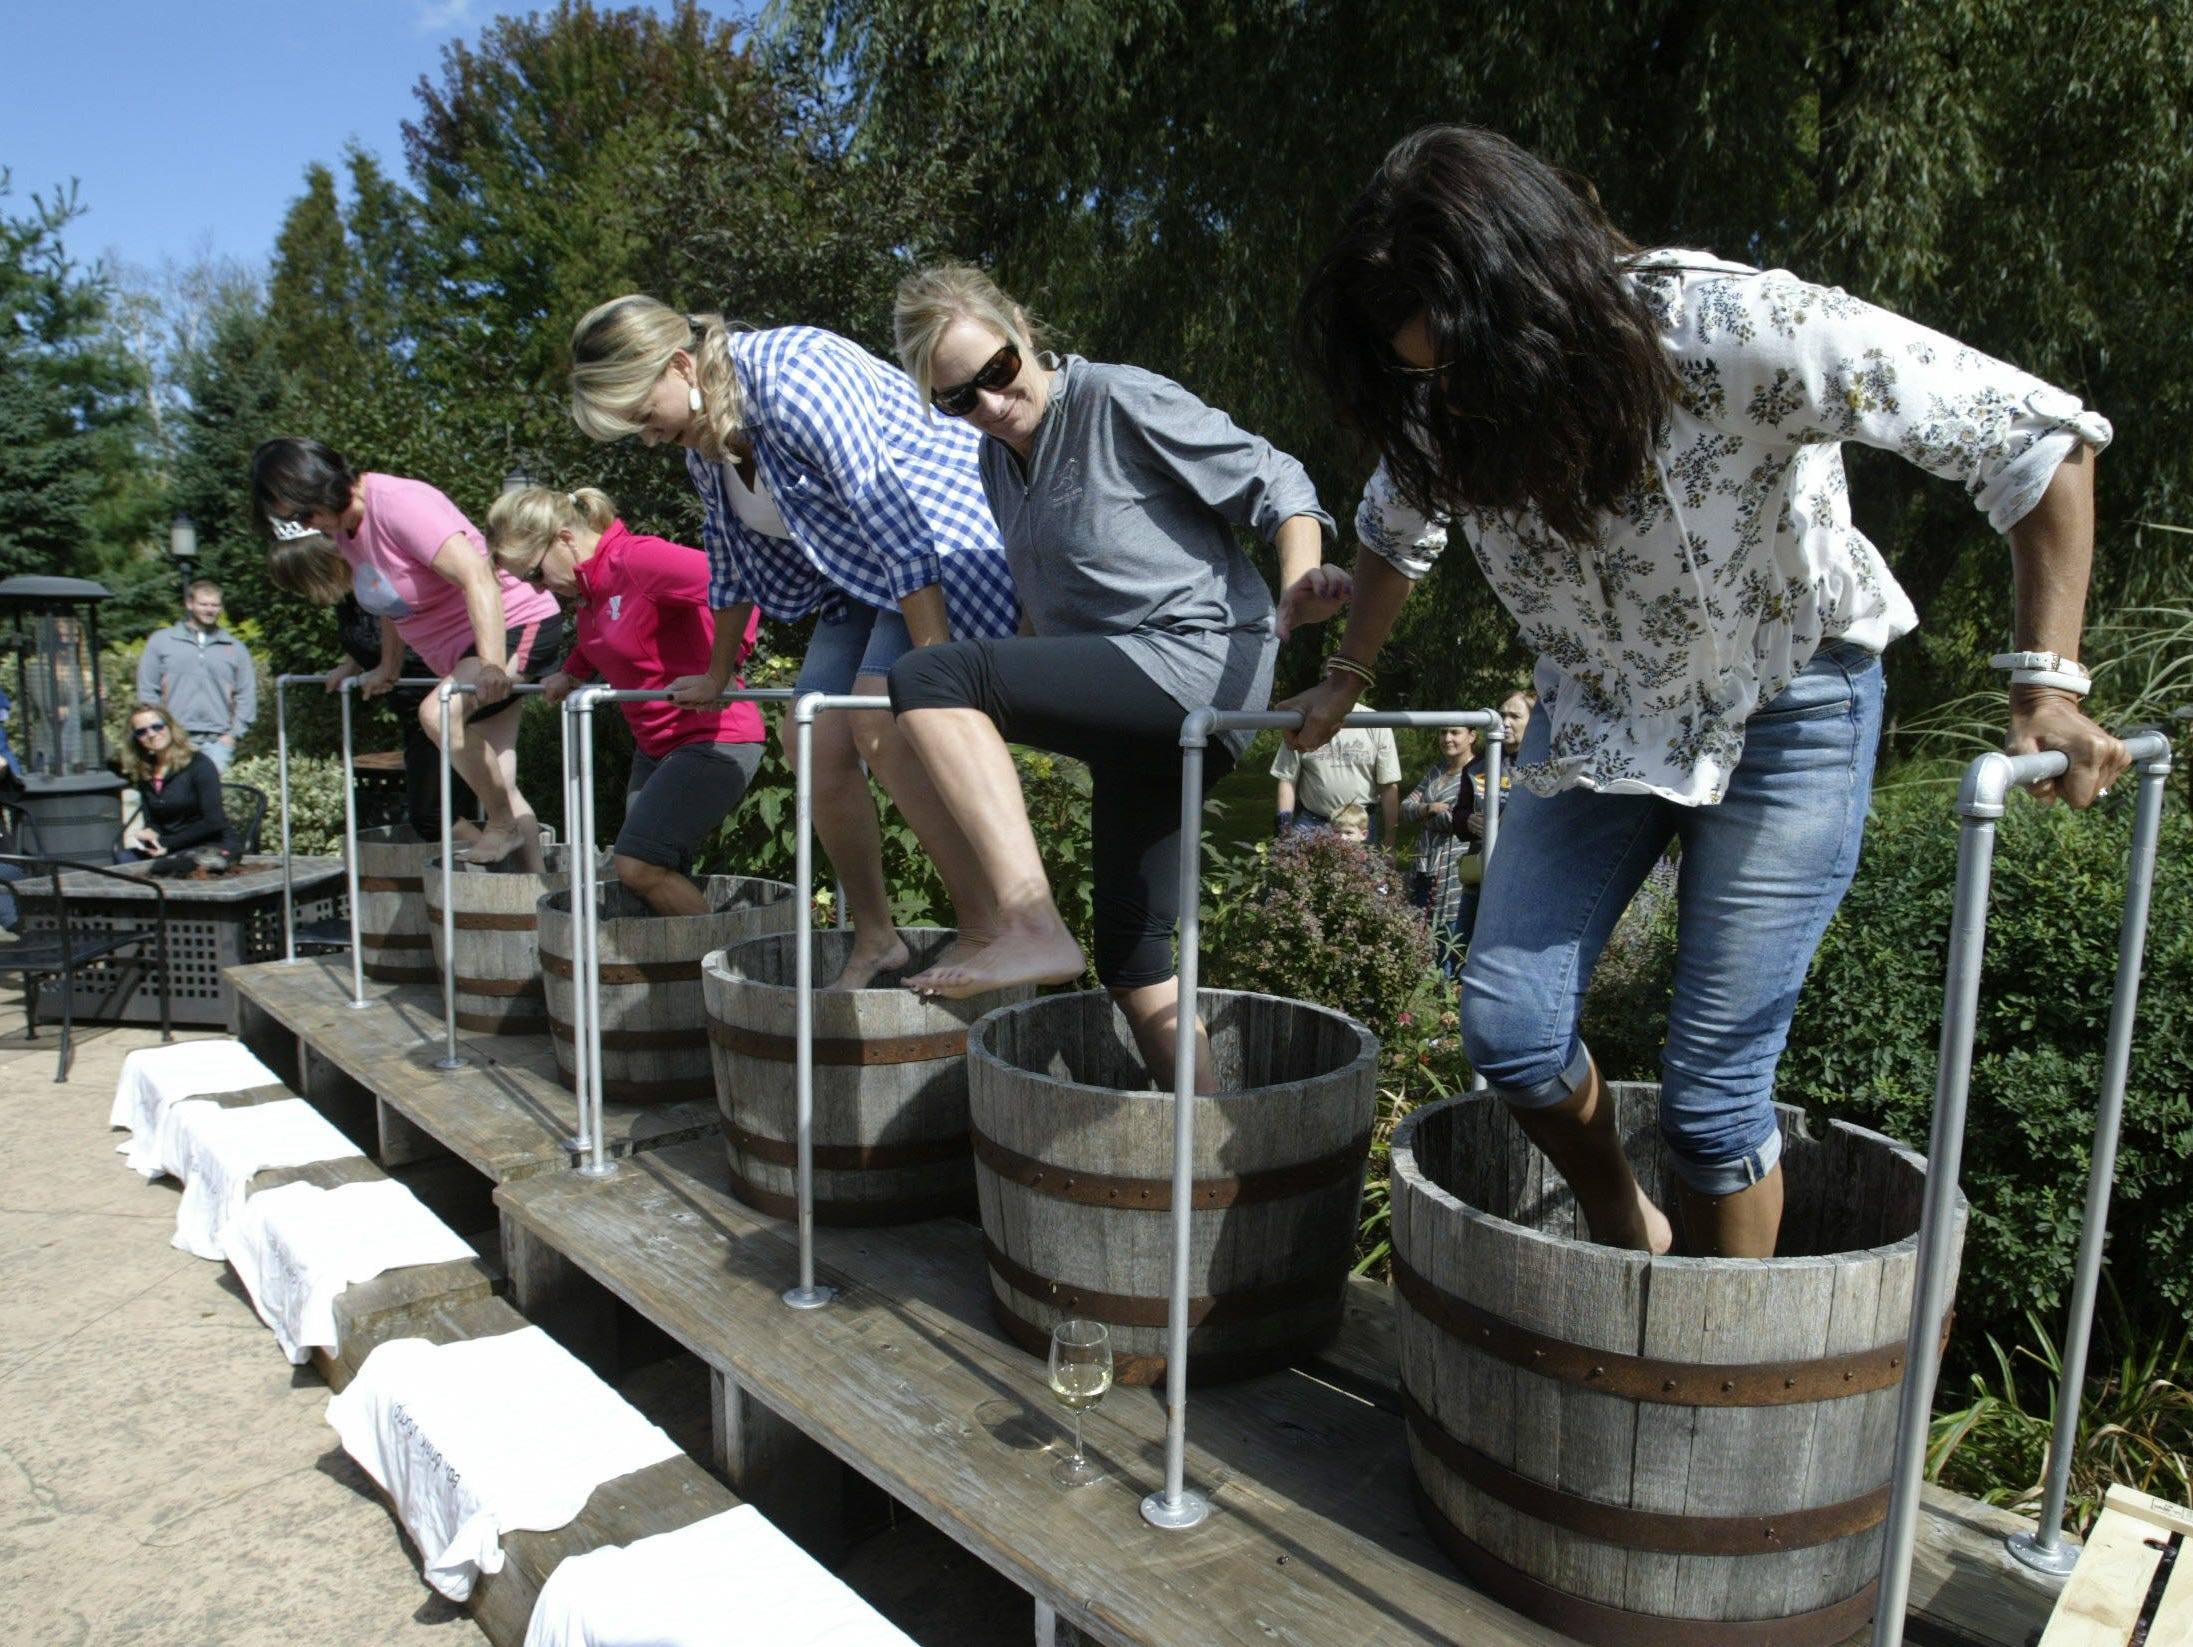 Contestants stomp away at grapes at the Harvest Festival & Grape Stomp at The Blind Horse Restaurant and Winery, Saturday, September 22, 2018, in Kohler, Wis.